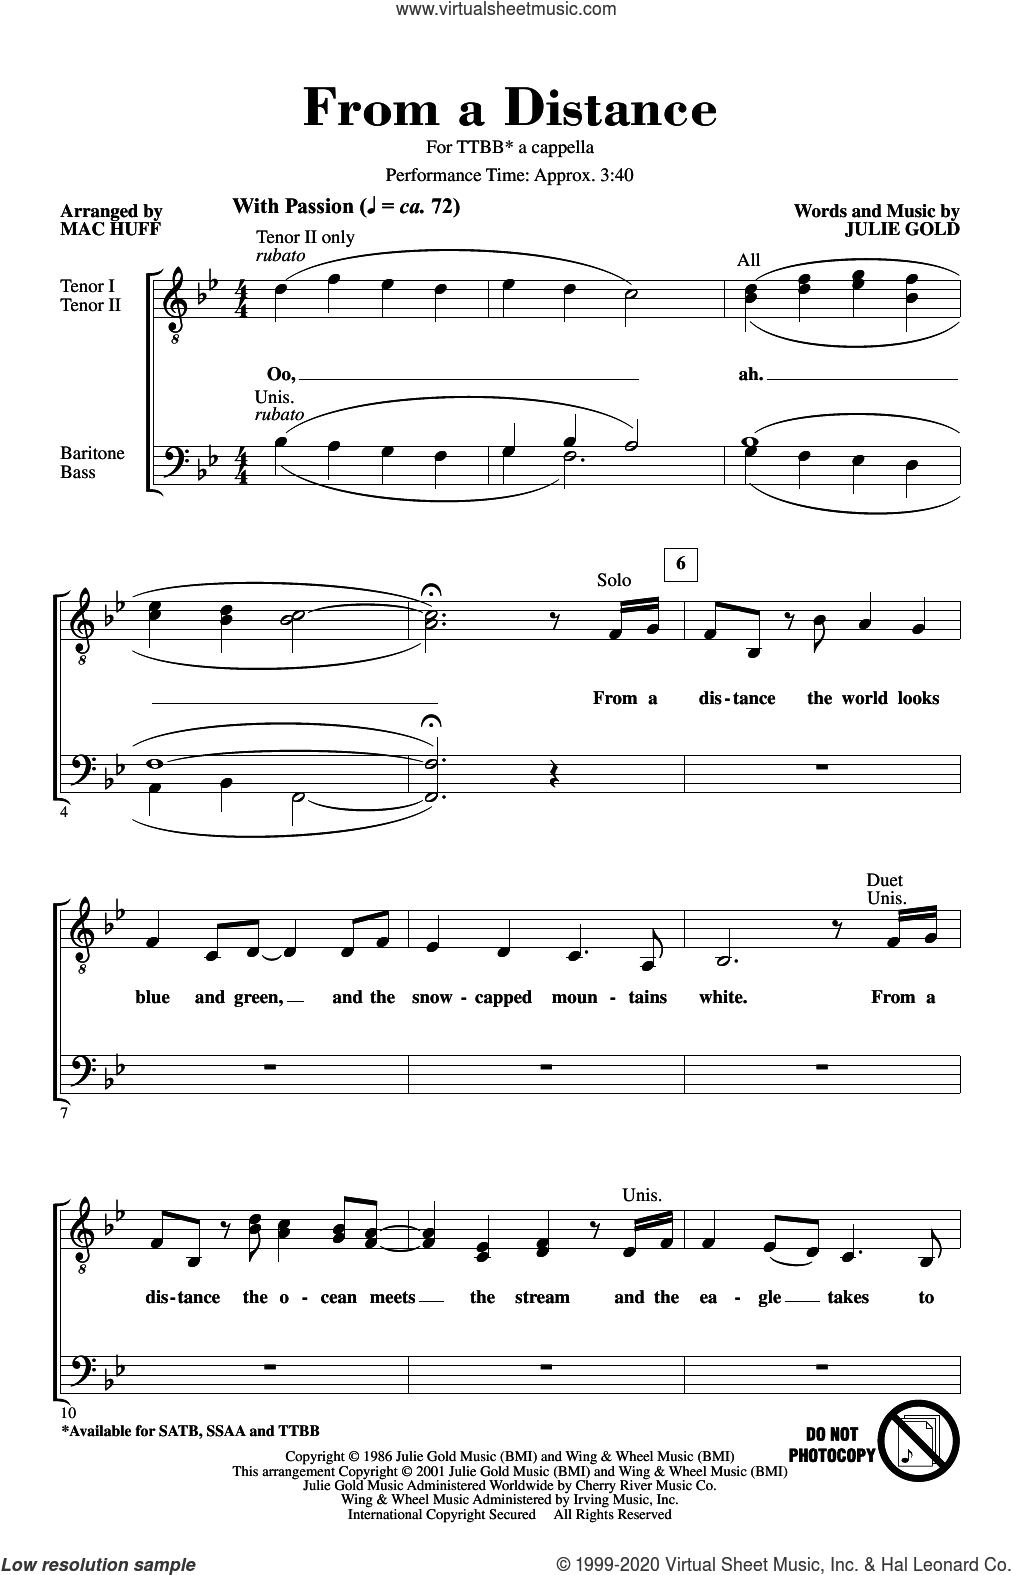 From A Distance (arr. Mac Huff) sheet music for choir (TTBB: tenor, bass) by Bette Midler, Mac Huff and Julie Gold, intermediate skill level